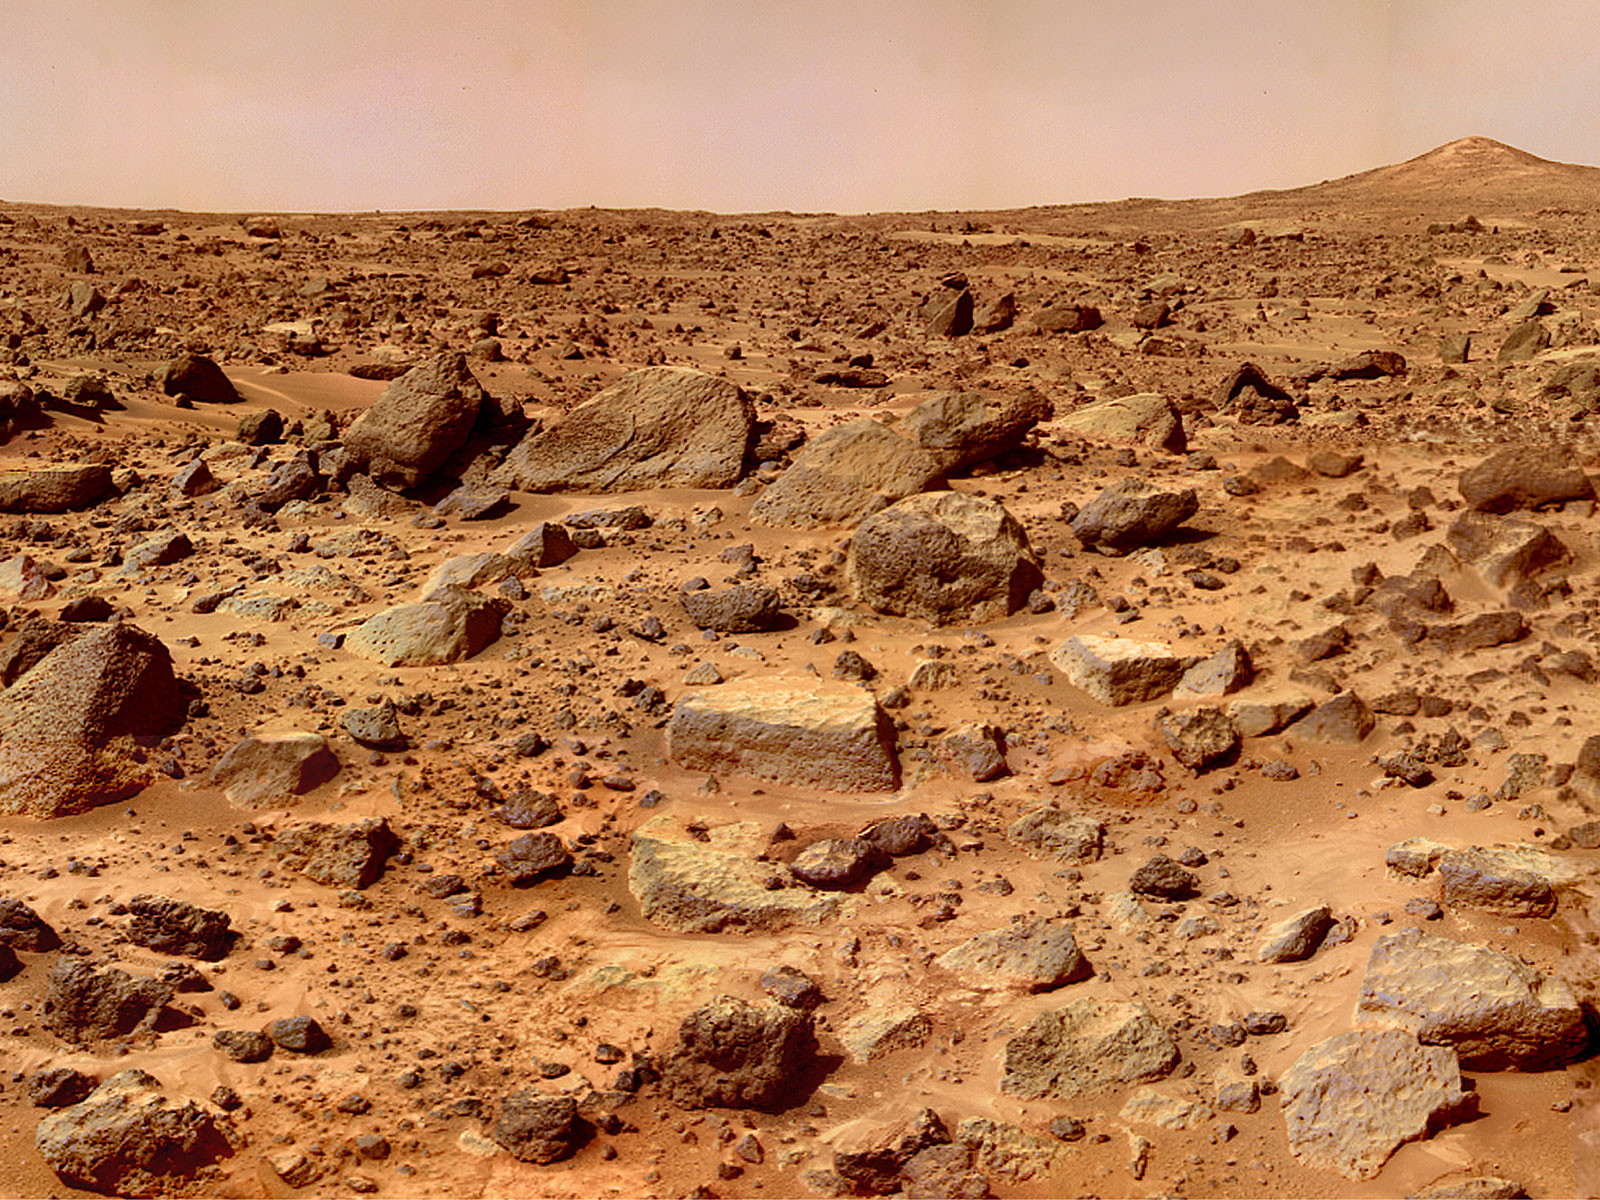 Martian Meteorite Shows Evidence of Water